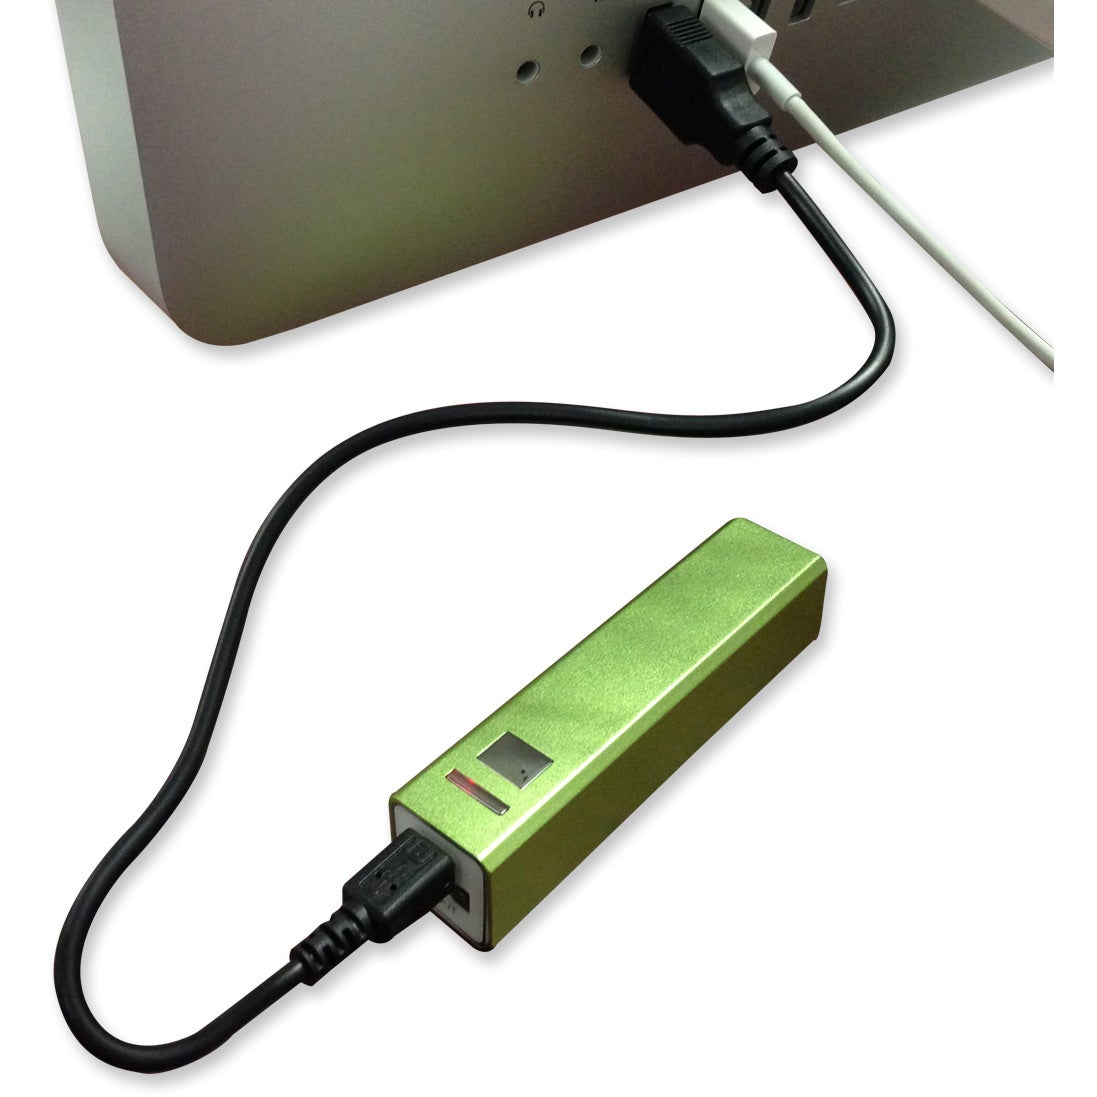 Ul listed portable usb charger mobile devices trade for Usb c portable charger